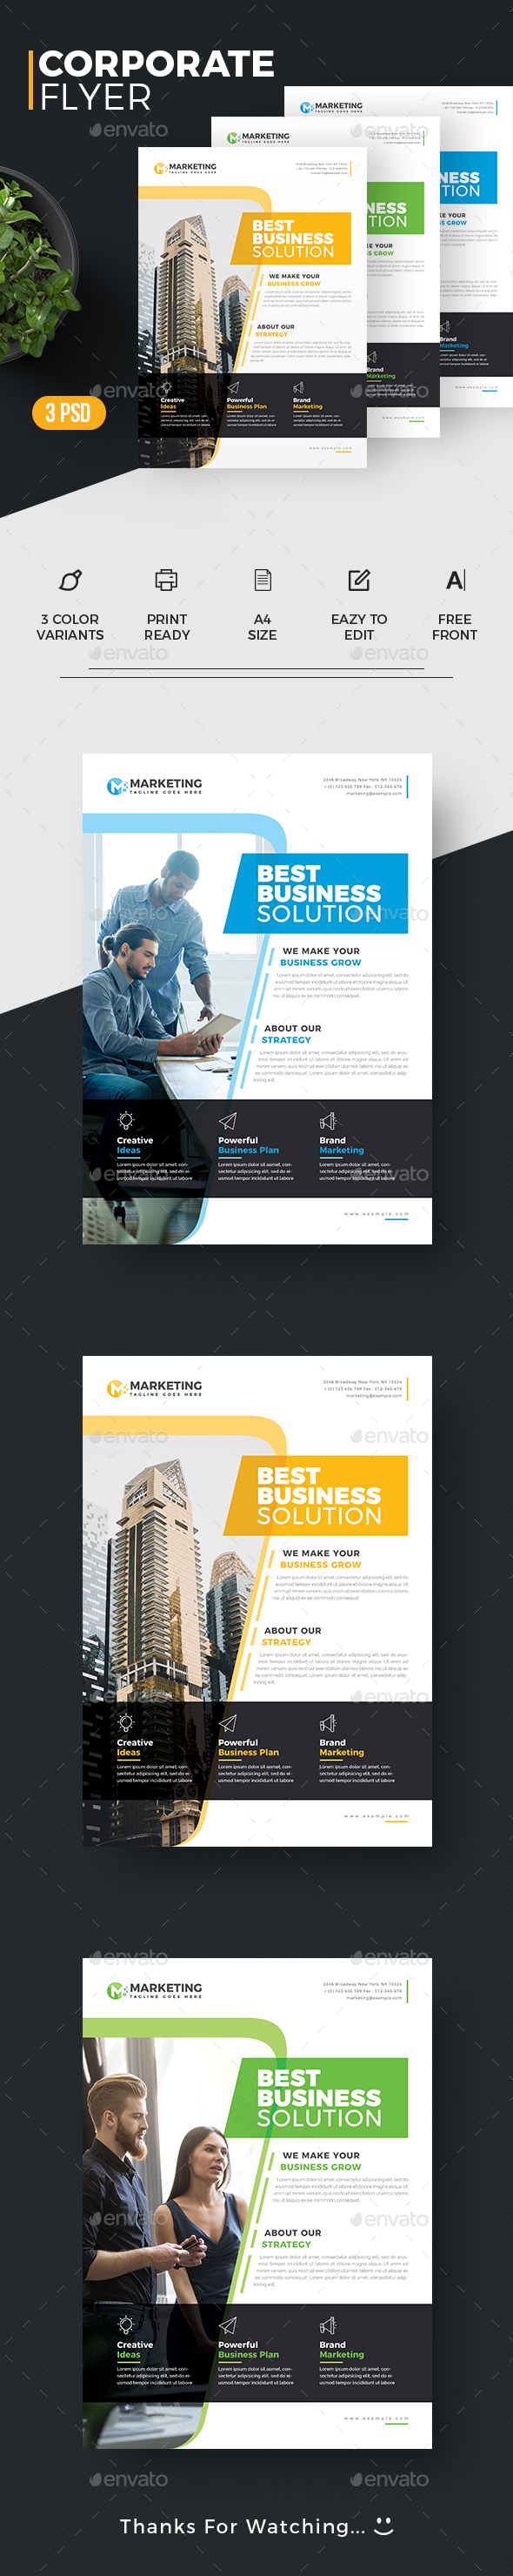 GraphicRiver Corporate flyer 20383593